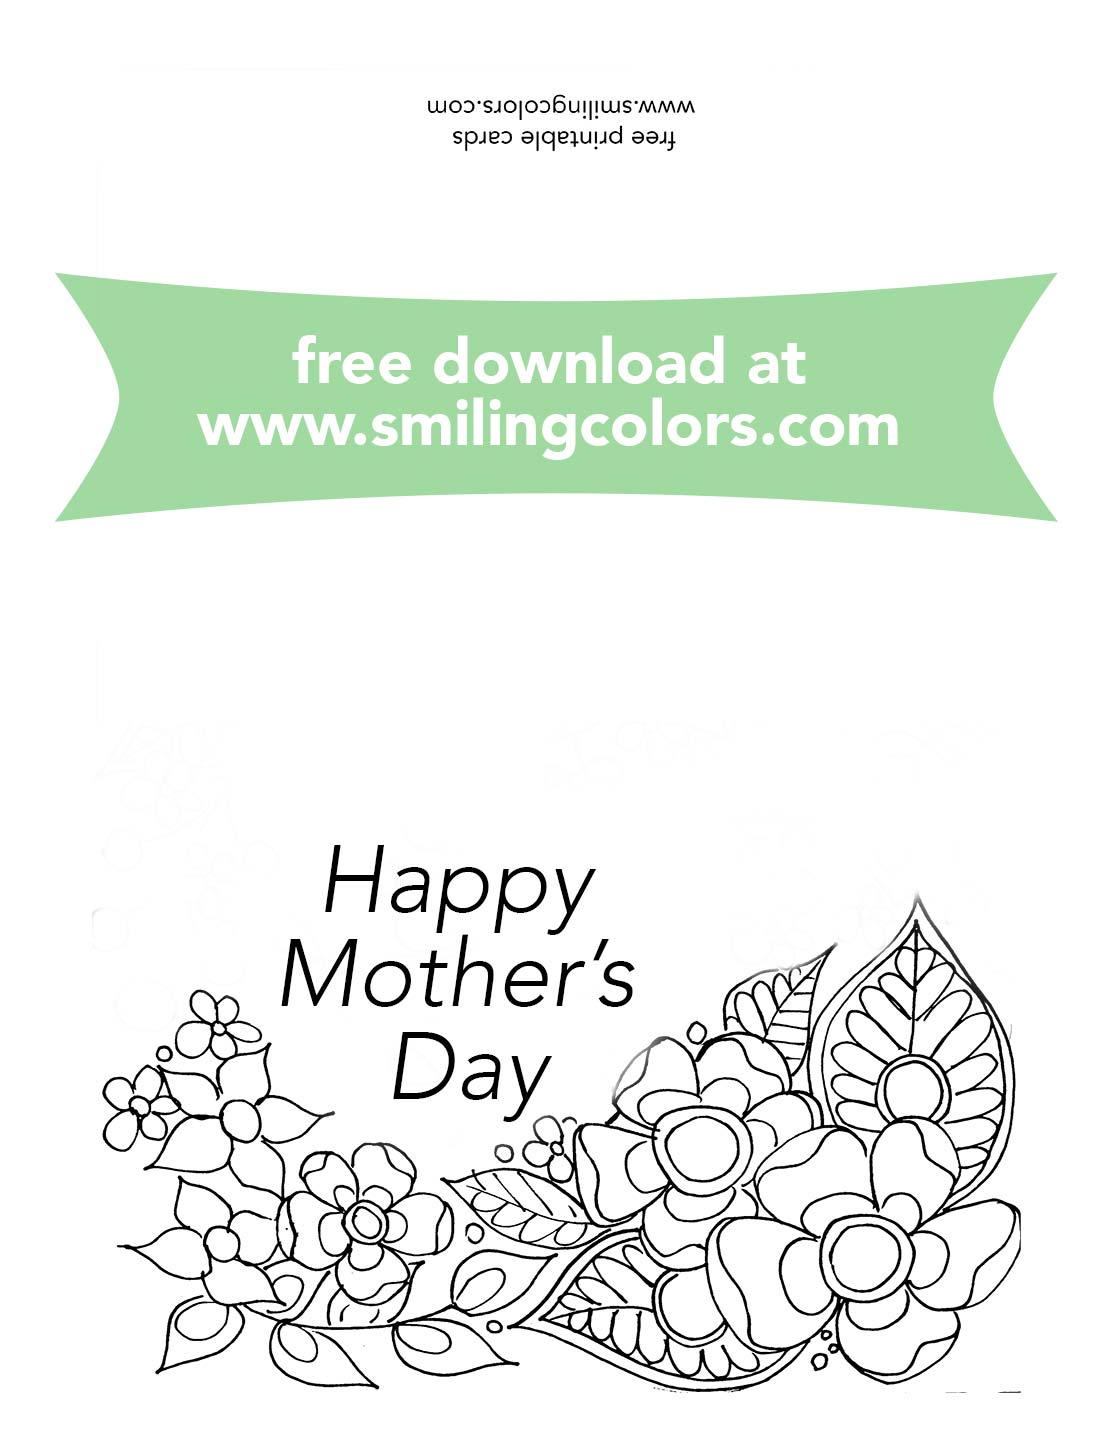 photograph regarding Happy Mothers Day Printable Cards known as Moms working day coloring playing cards, Totally free toward print and coloration already